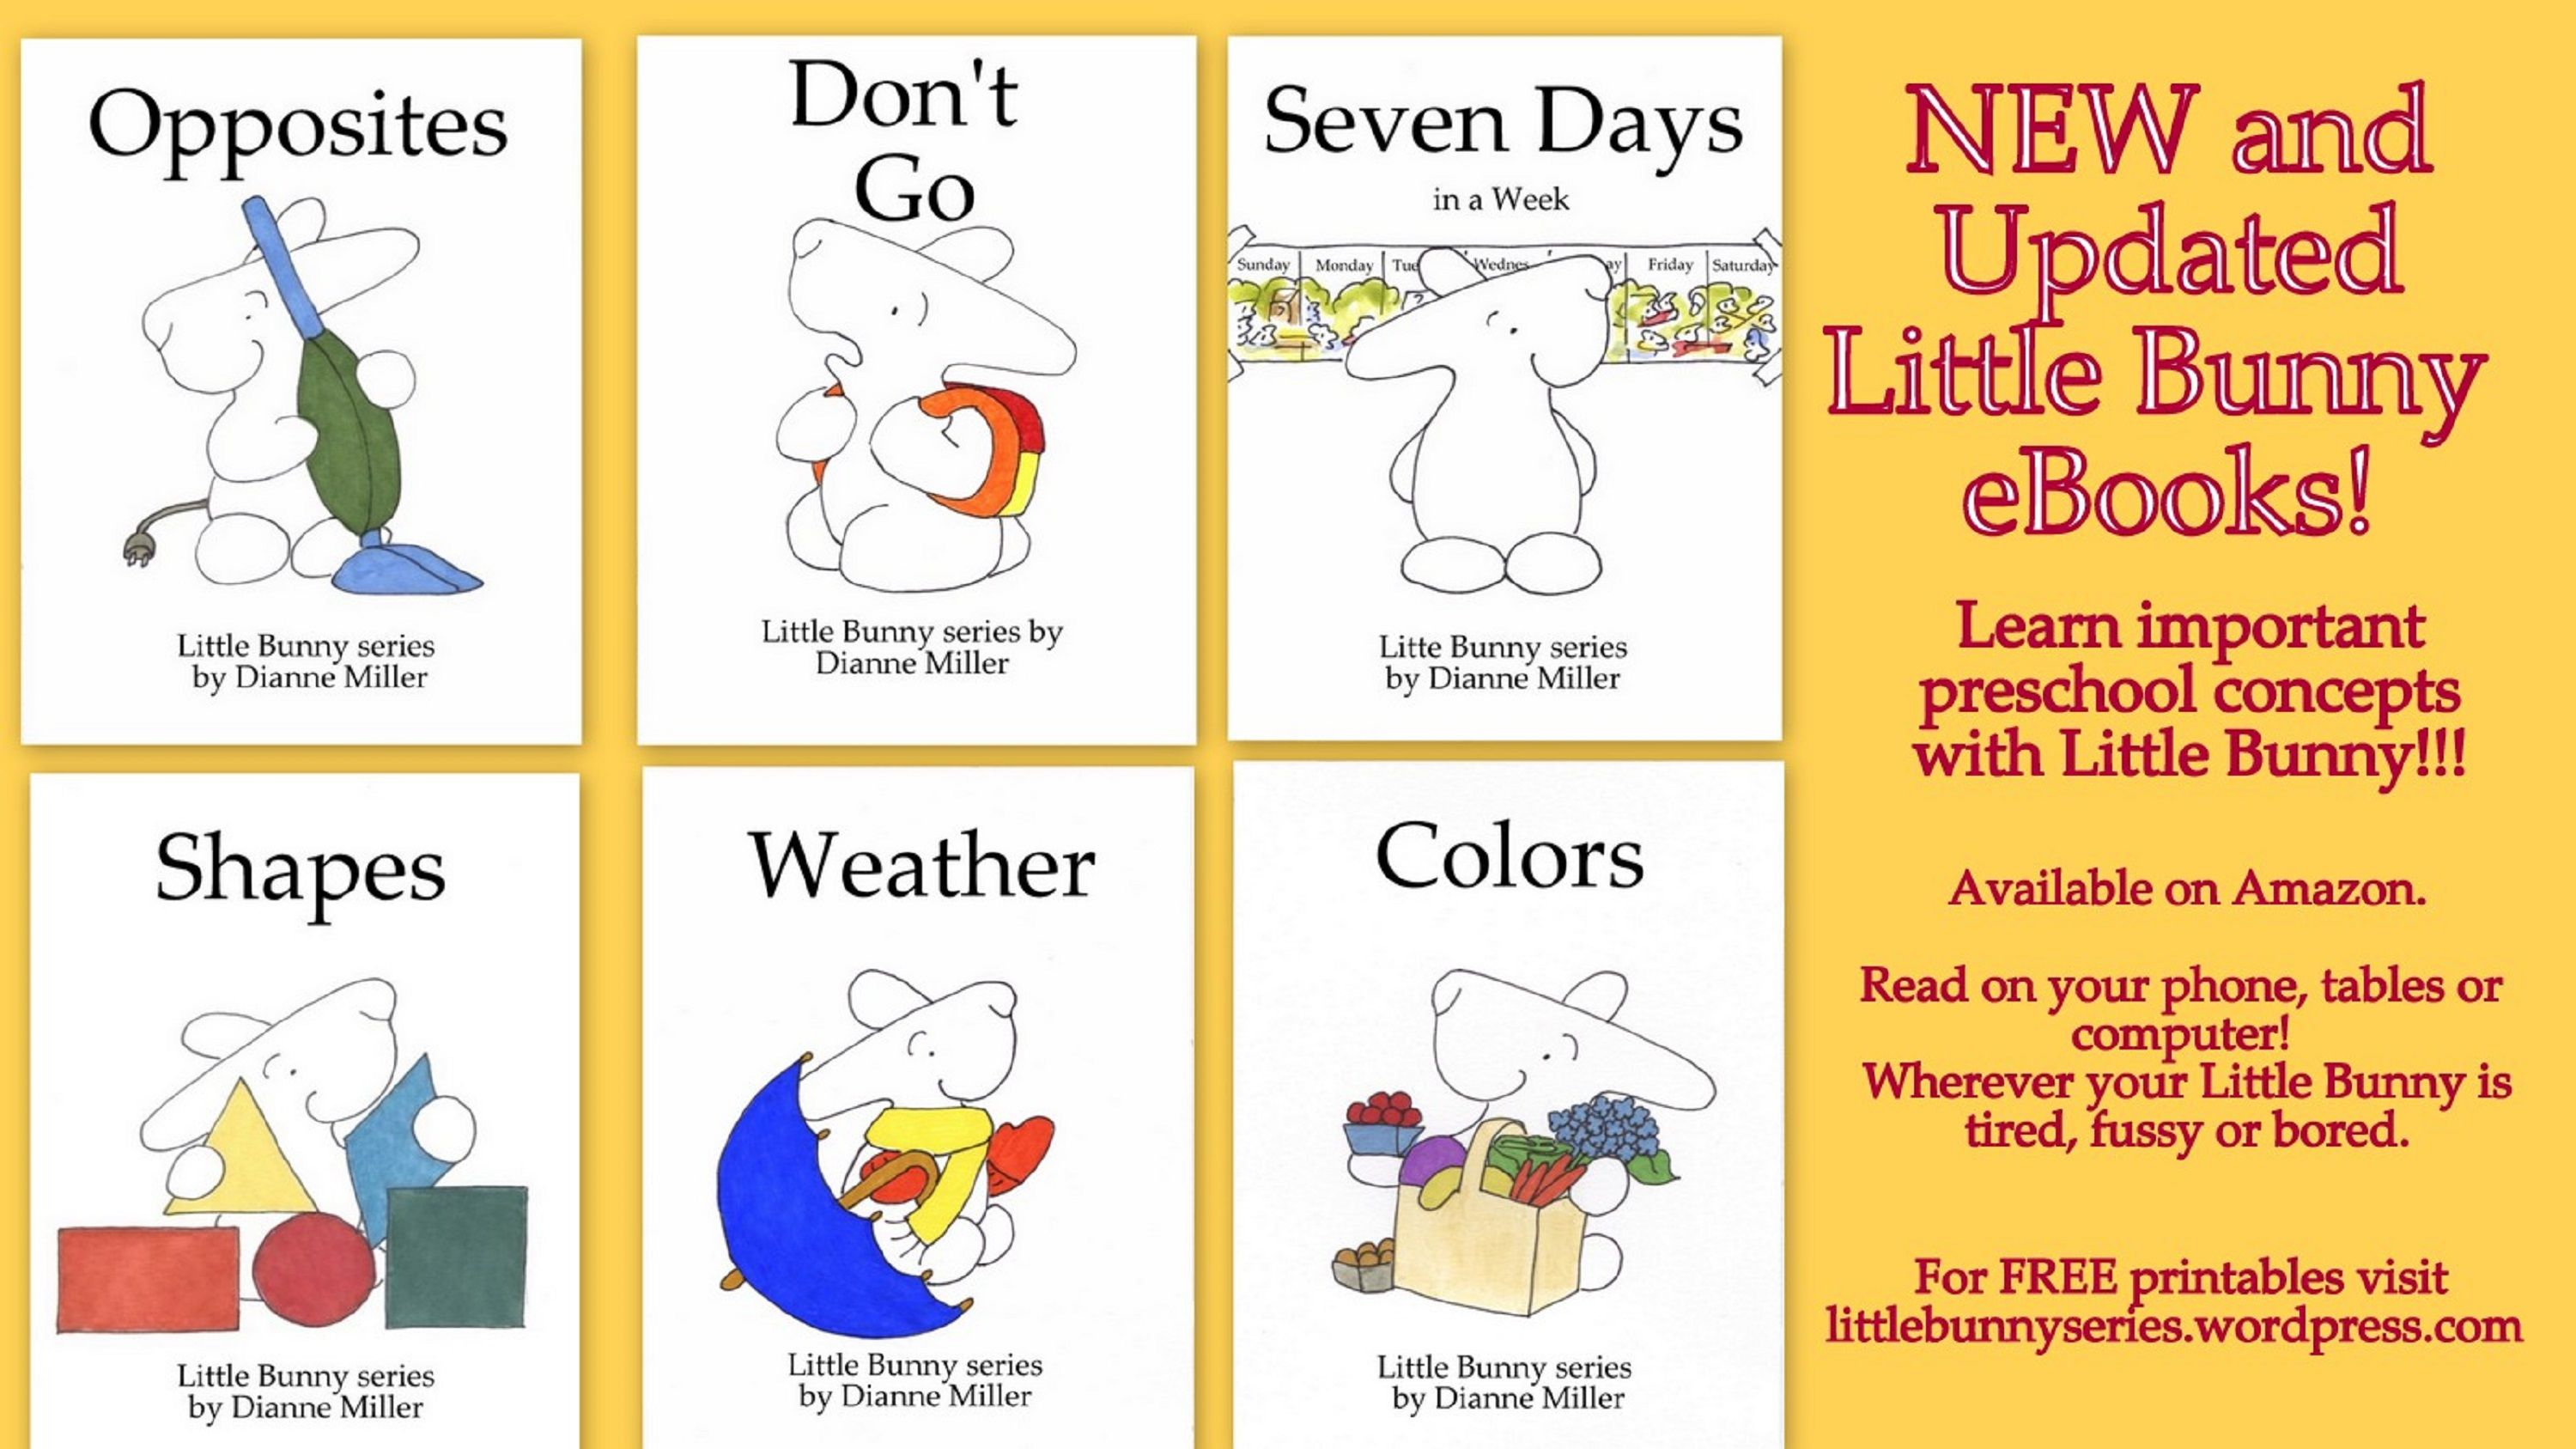 All Little Bunny Ebooks Are Free With Kindle Unlimited